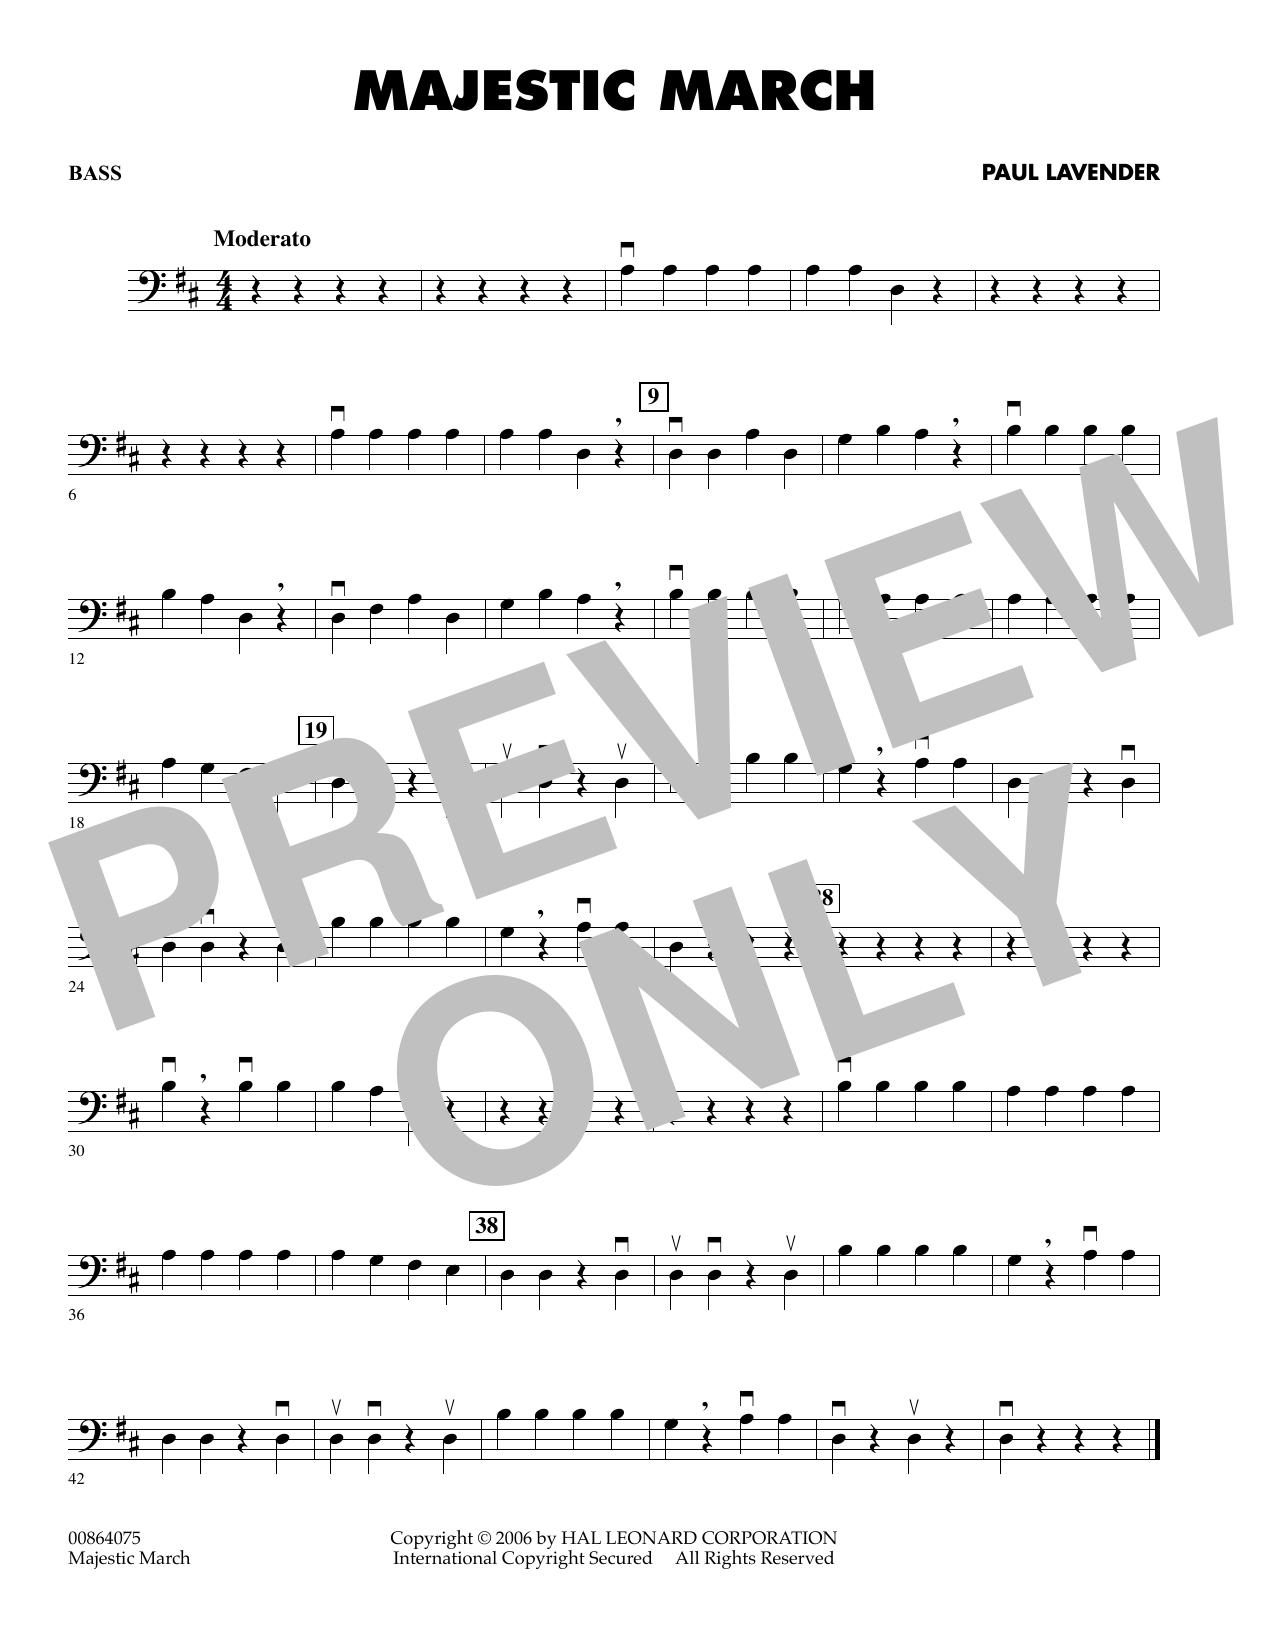 Paul Lavender Majestic March - String Bass sheet music preview music notes and score for Orchestra including 1 page(s)